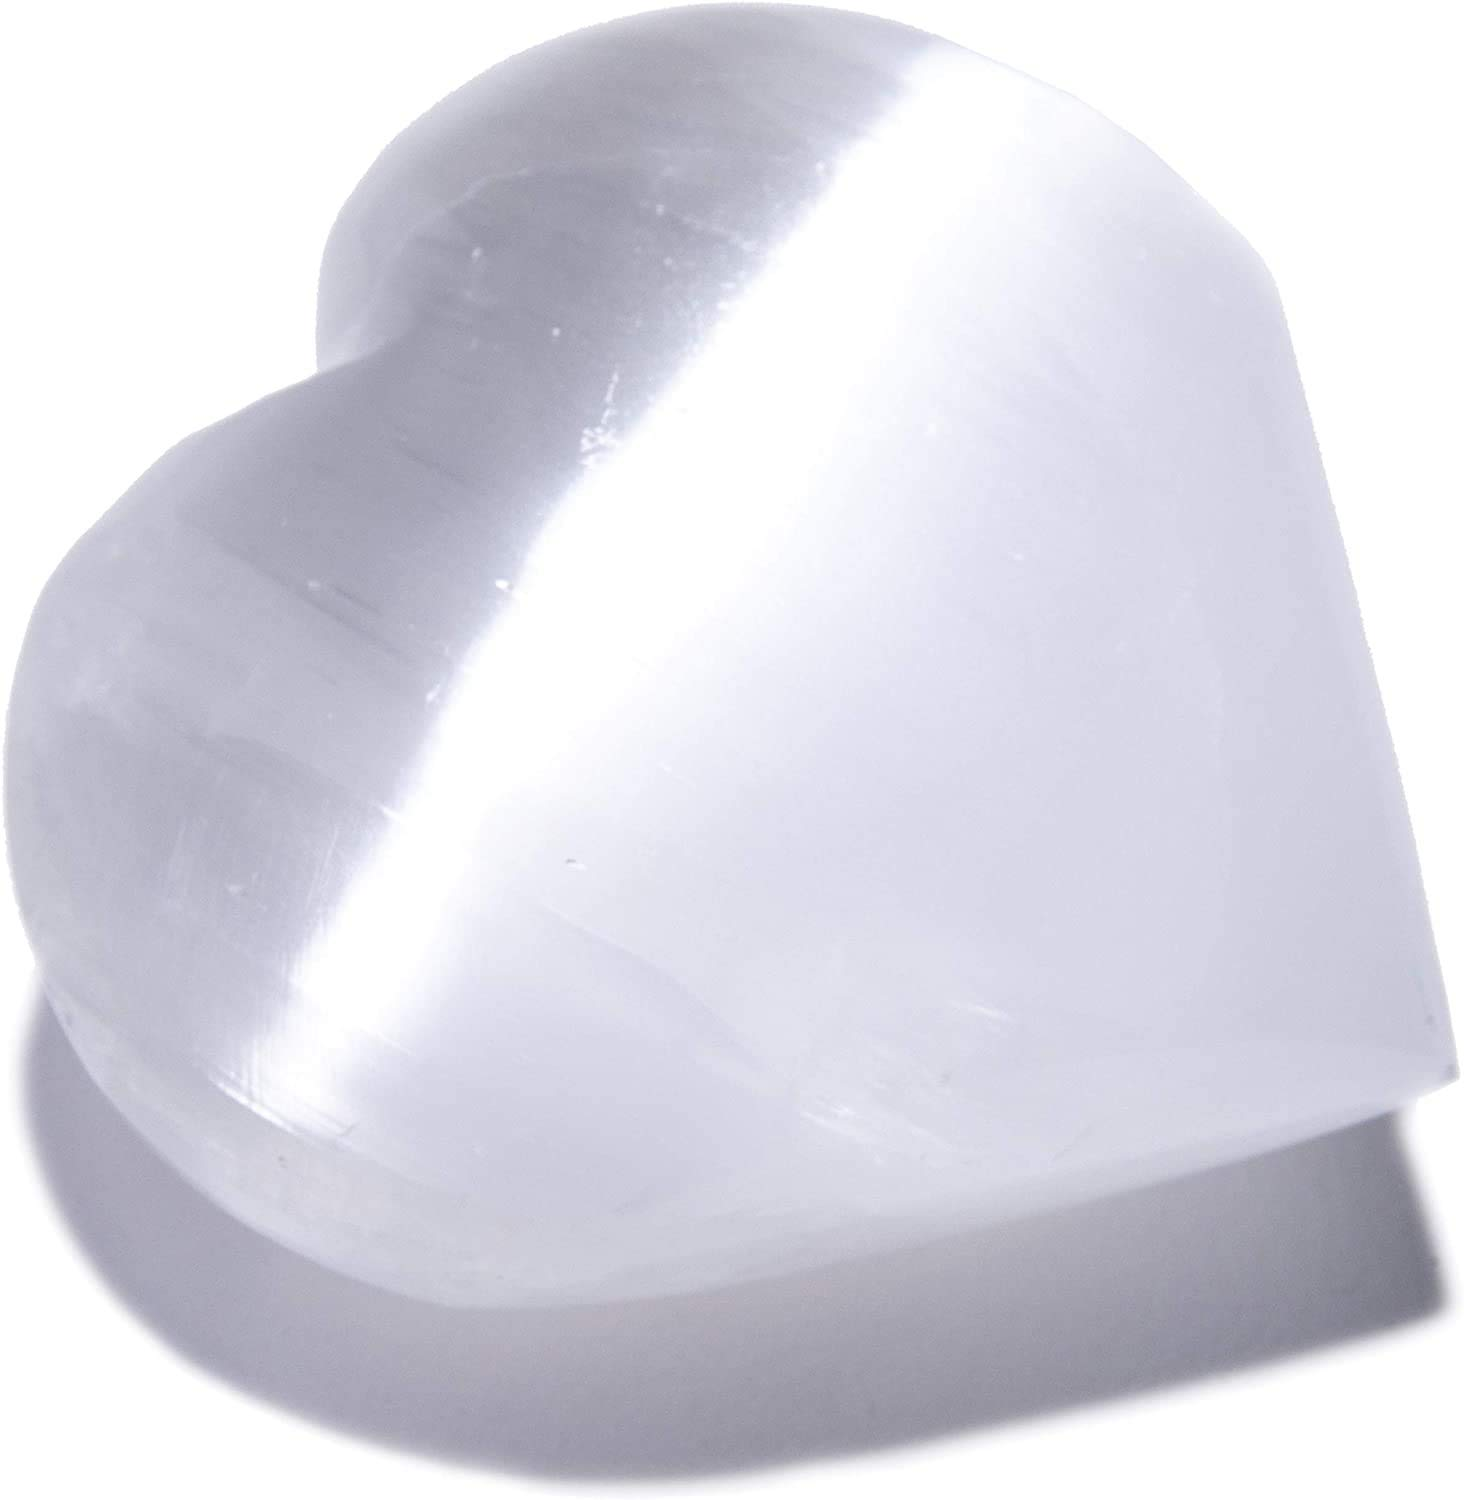 KALIFANO Selenite Heart Worry Stone with Healing & Calming Effects - High Energy Selenita/Satin Spar Love Palm Stone Used for Cleansing and Protection (Information Card Included)